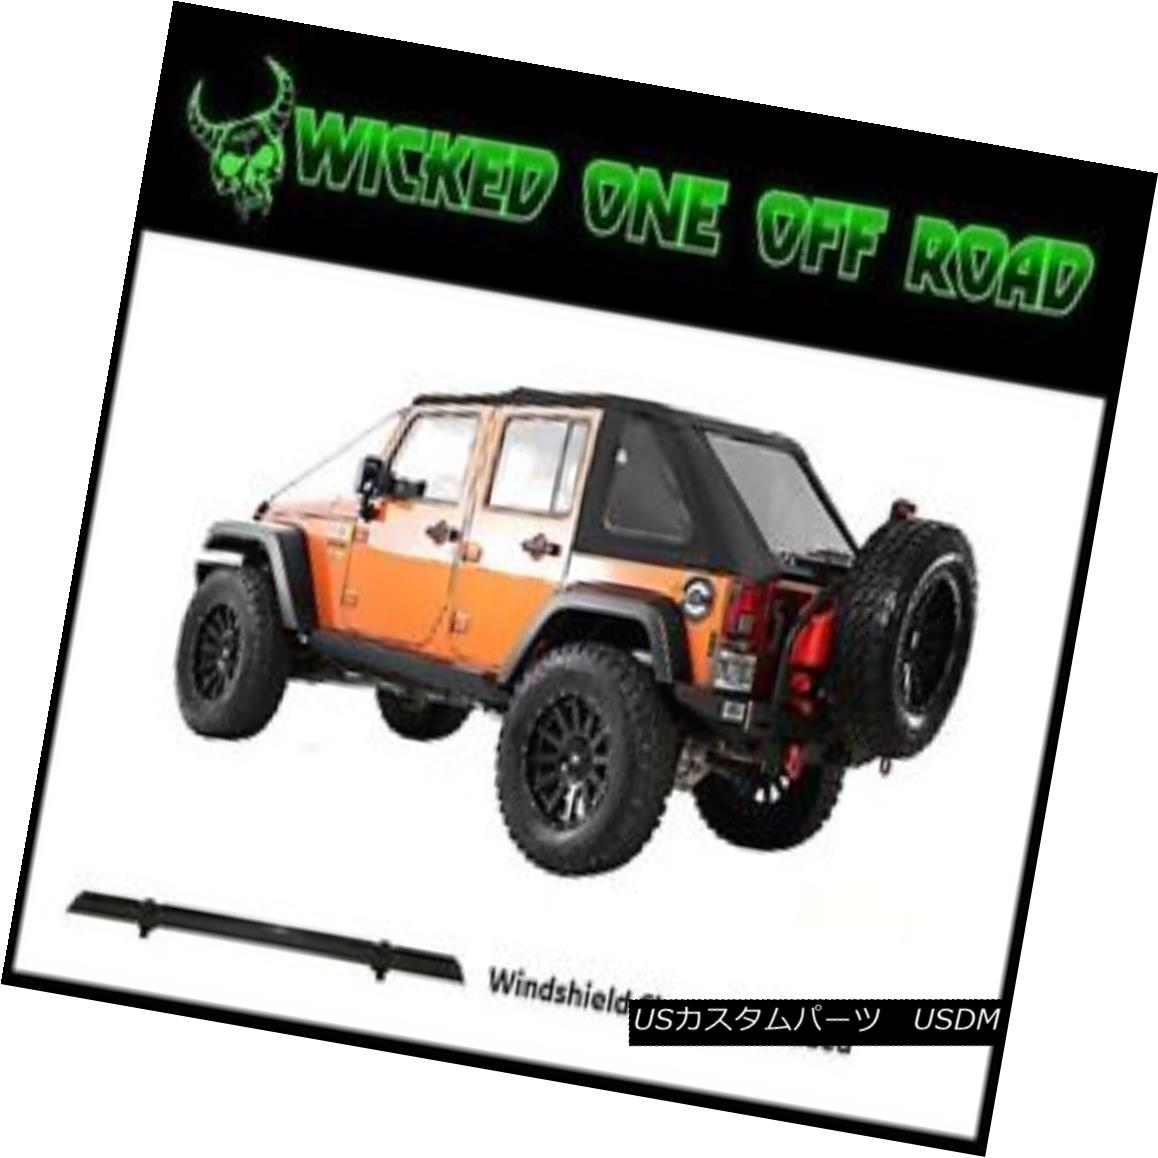 幌・ソフトトップ Smittybilt Bowless Combo Replacement Soft Top for 07-17 Jeep JK Wrangler (4-dr) Smittybilt Bowless Combo Replacementソフトトップ - 07-17ジープJK Wrangler(4-dr)